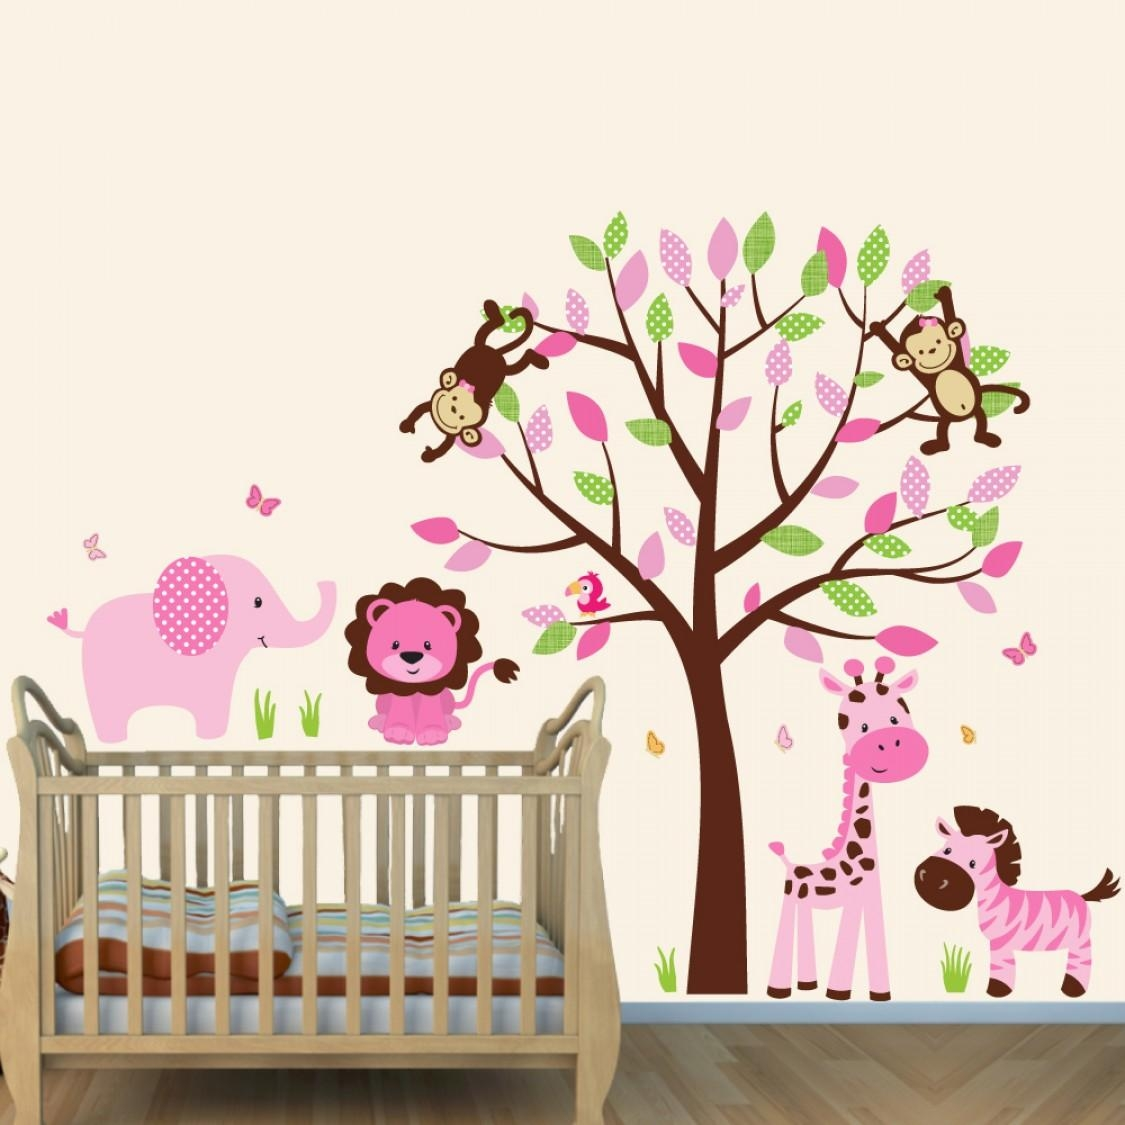 Pink And Brown Jungle Murals For Kids Rooms With Elephant Wall Throughout Elephant Wall Art For Nursery (Image 11 of 20)